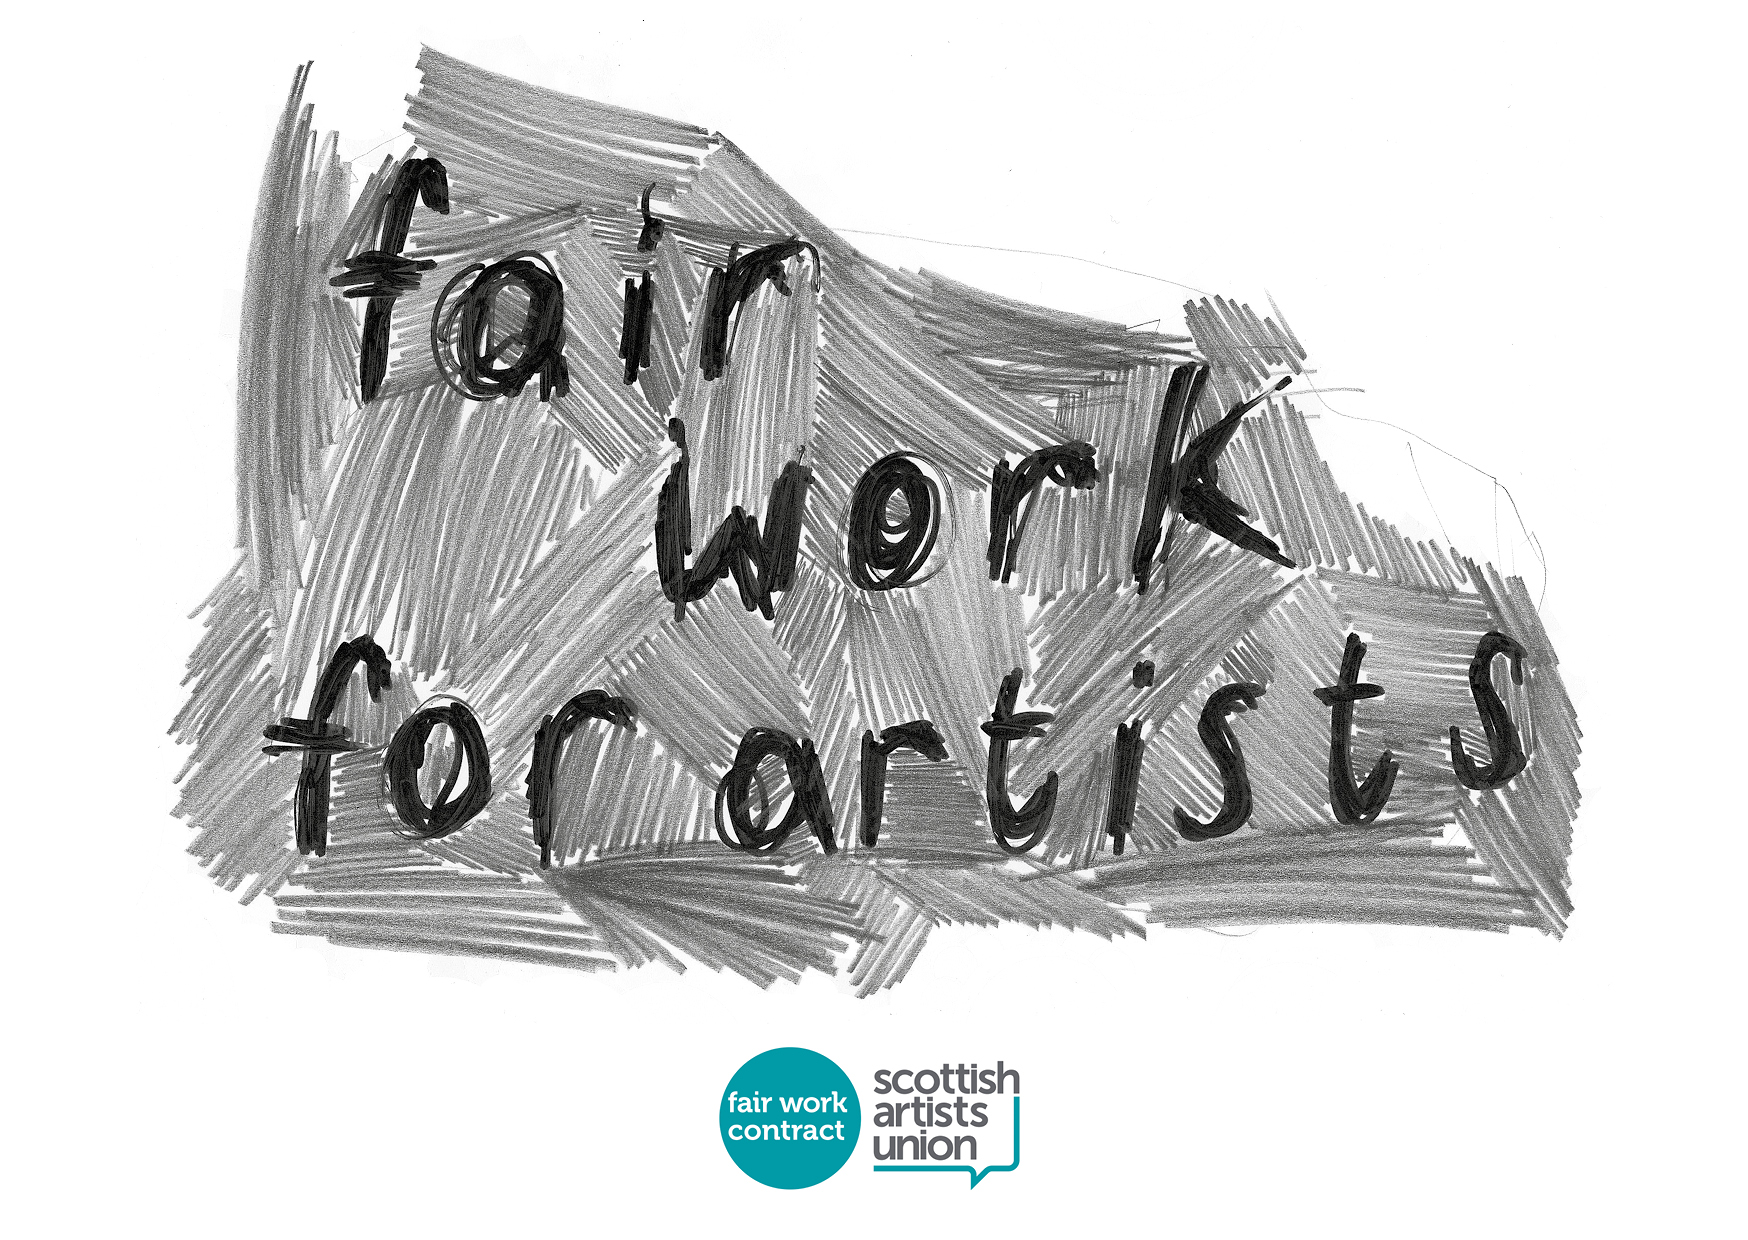 We welcome this report urging effective action on making work pay for artists